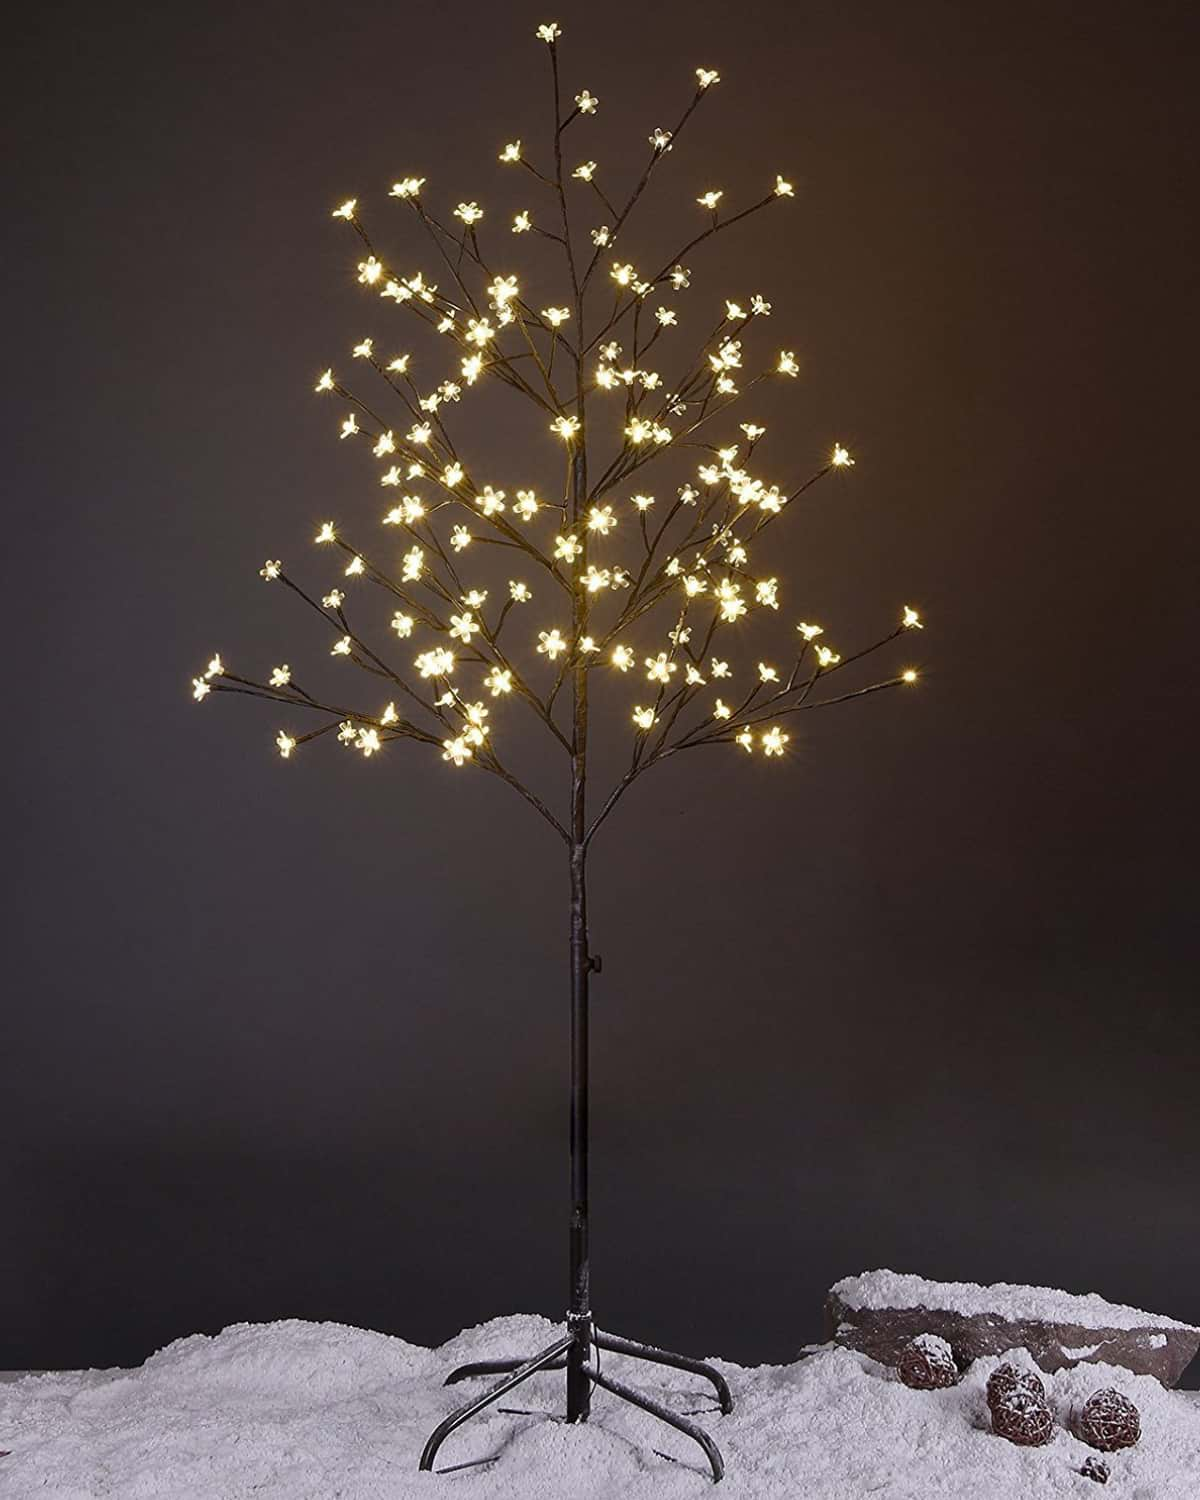 Lightshare LED Tree | High Tech Christmas Decorations To Get Into the Festive Holiday Season